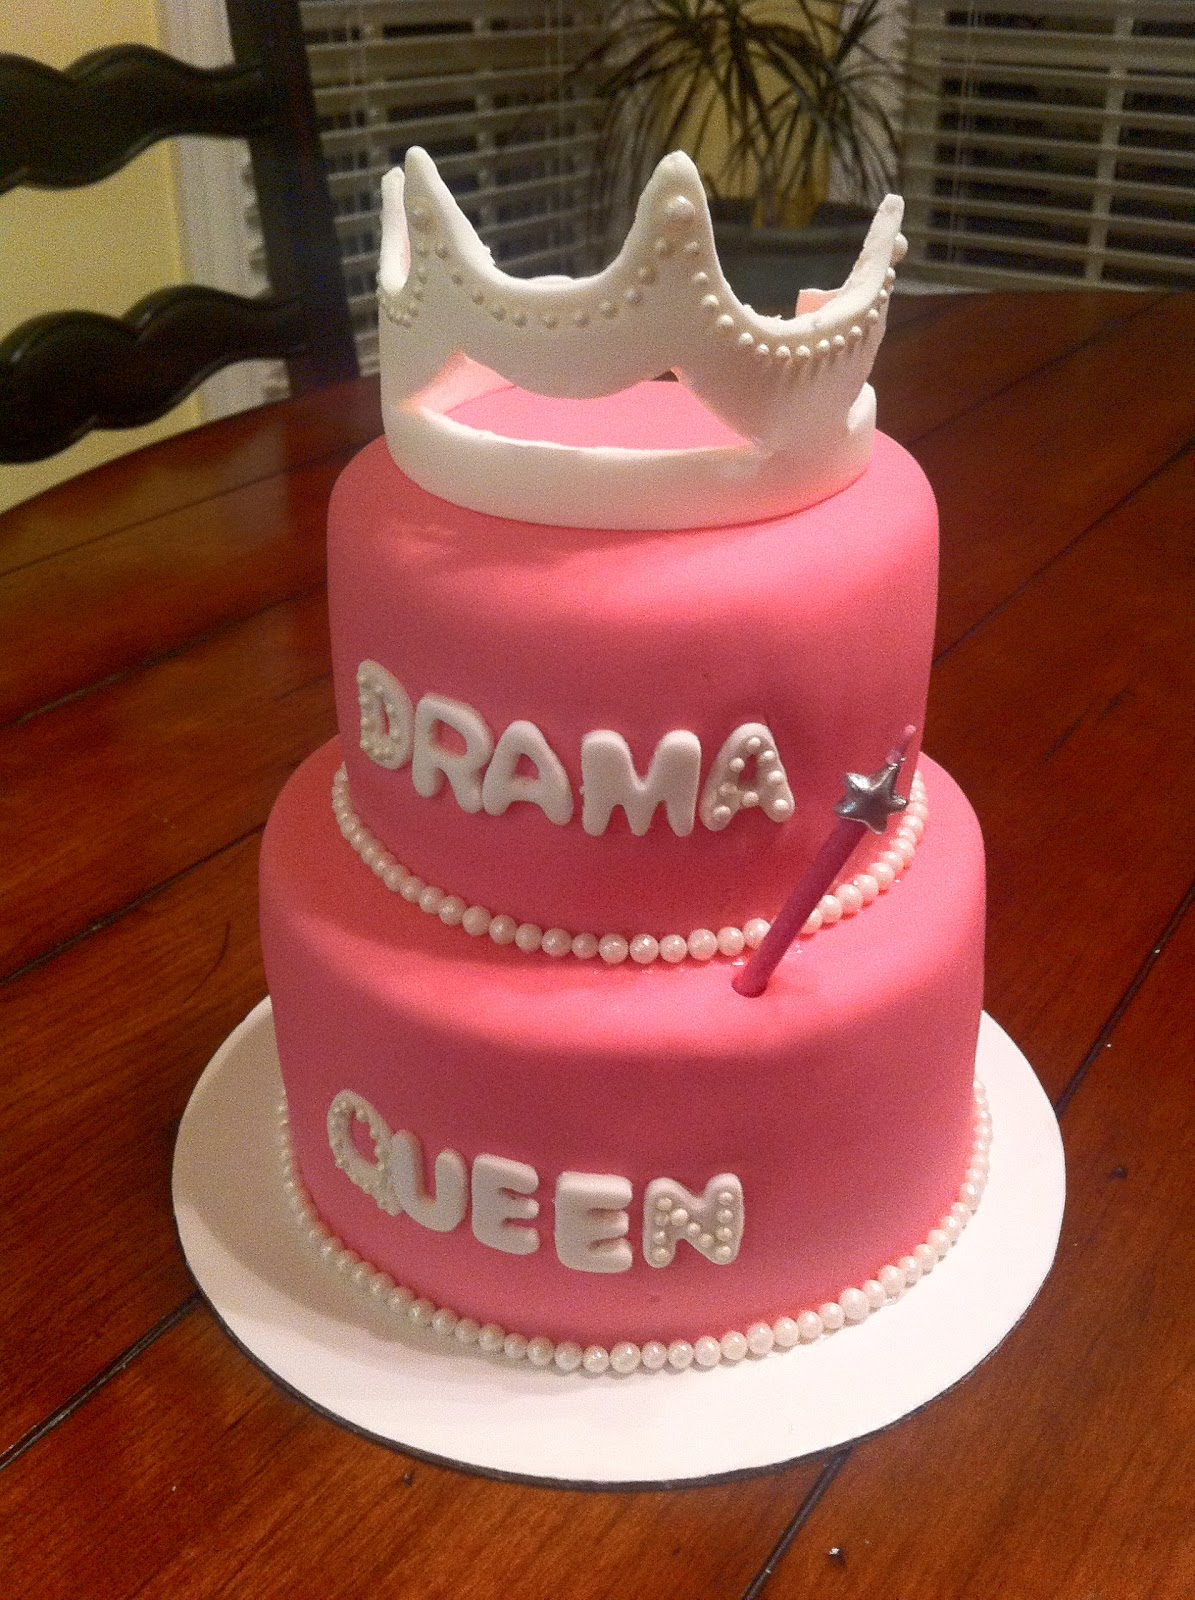 52 Weeks Of Sweets Week 32 Drama Queen Cake